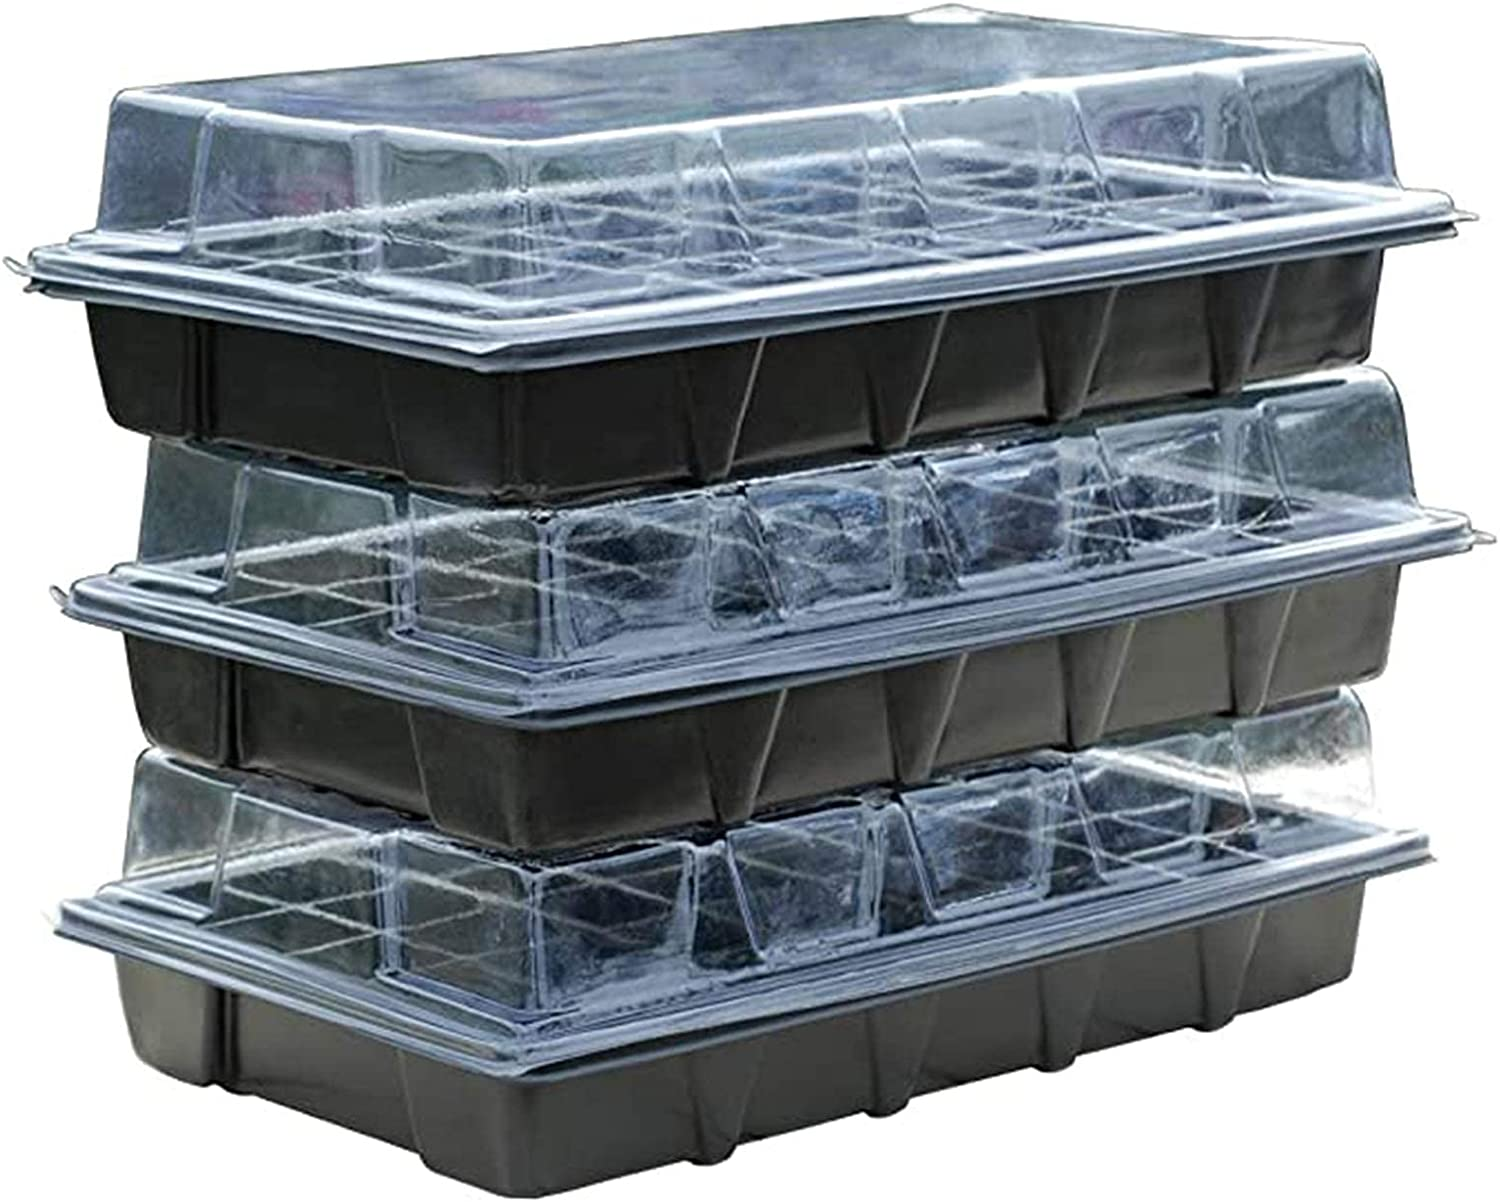 Greenhouse with Transparent Lid for Growing 3Pcs Seedlings, The Plastic Garden Tray, Small Greenhouse, A Moisturizing Incubator, for Interior/balcony (Color : Clear, Size : 54x28x24cm)Product No.:WW-